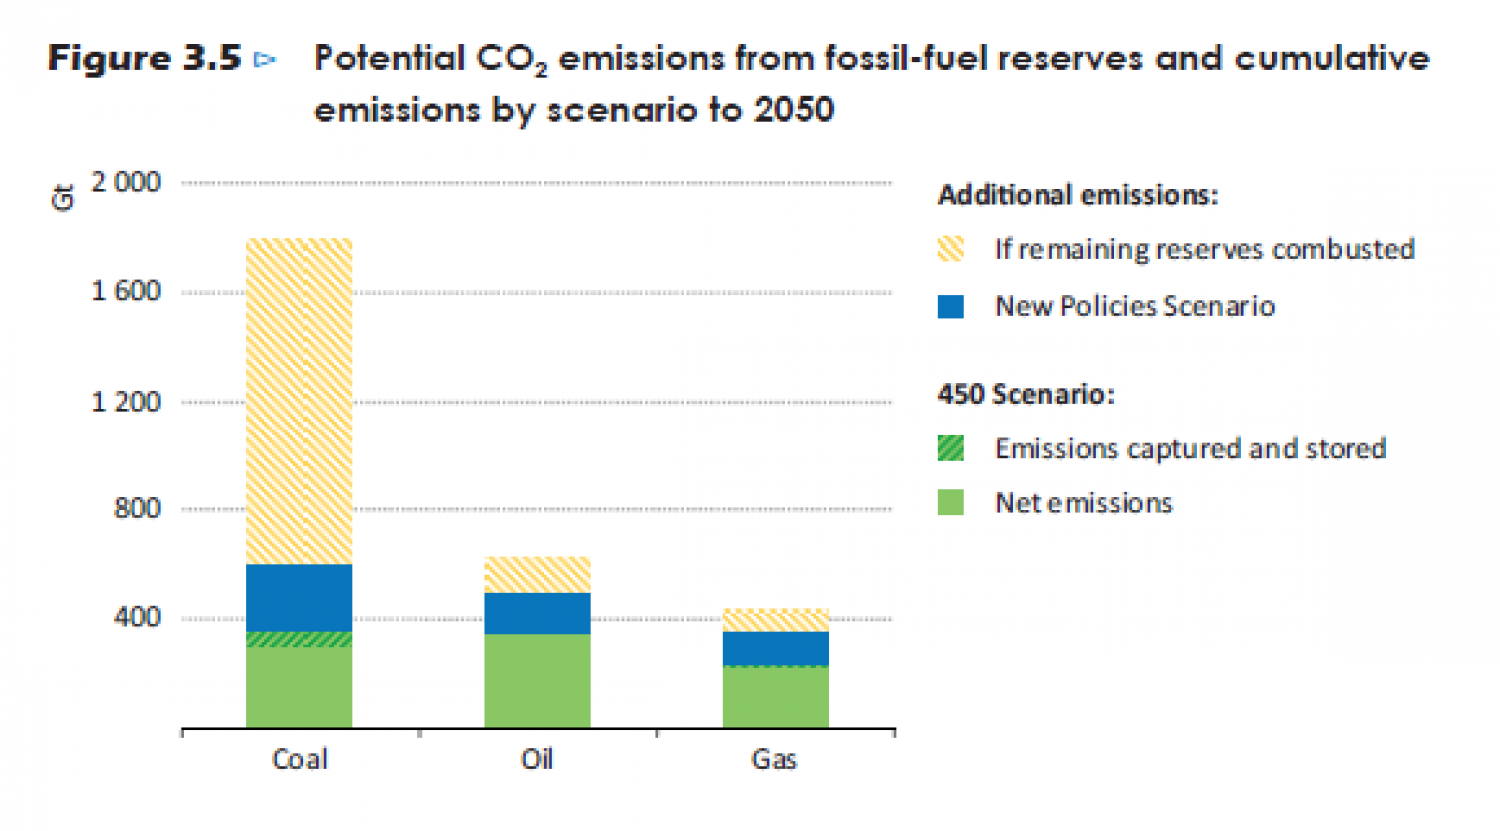 Potential CO2 emissions from fossil-fuel reserves and cumulative emissions by Scenario to 2050. Infographic